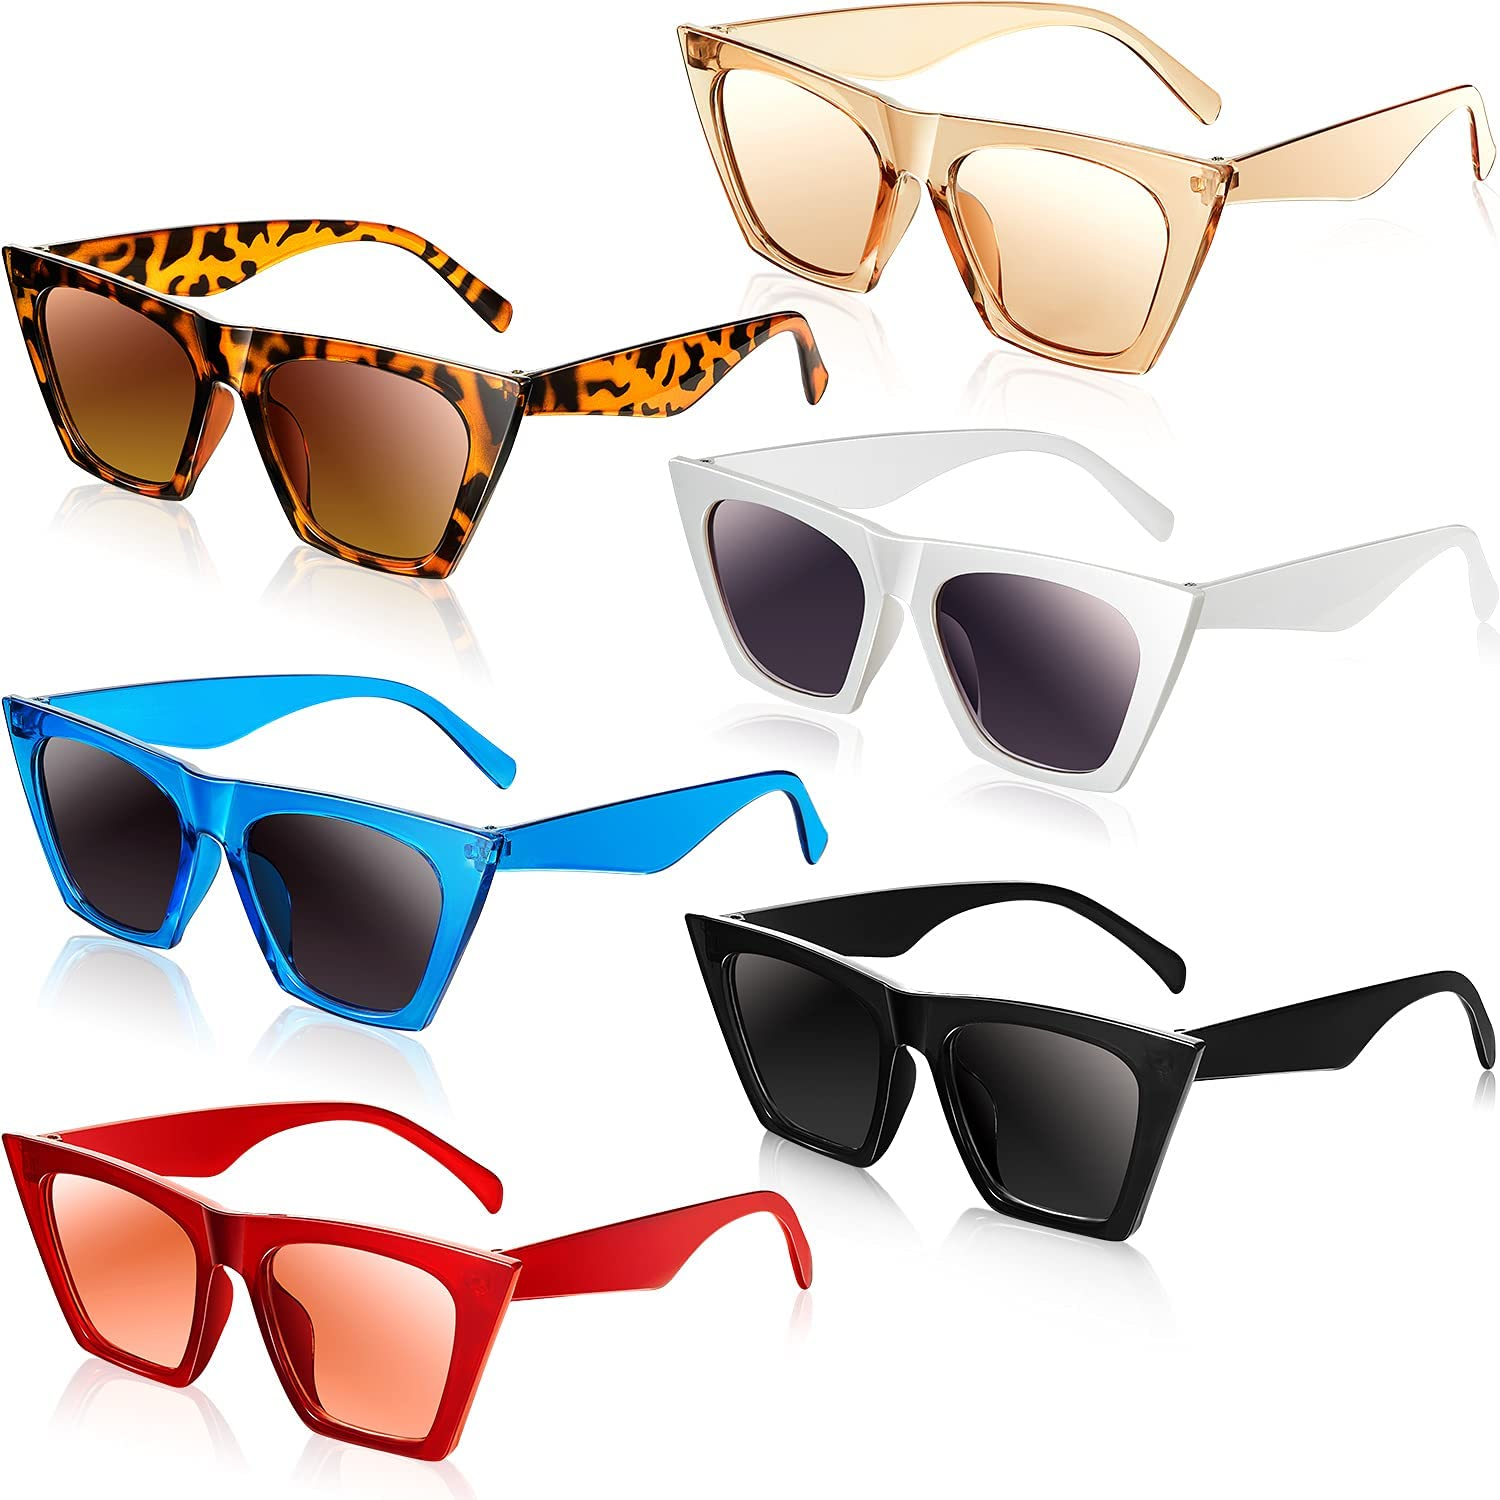 6 Pairs Square Cateye Vintage Sunglasses Classic Free shipping Bombing new work New Retr